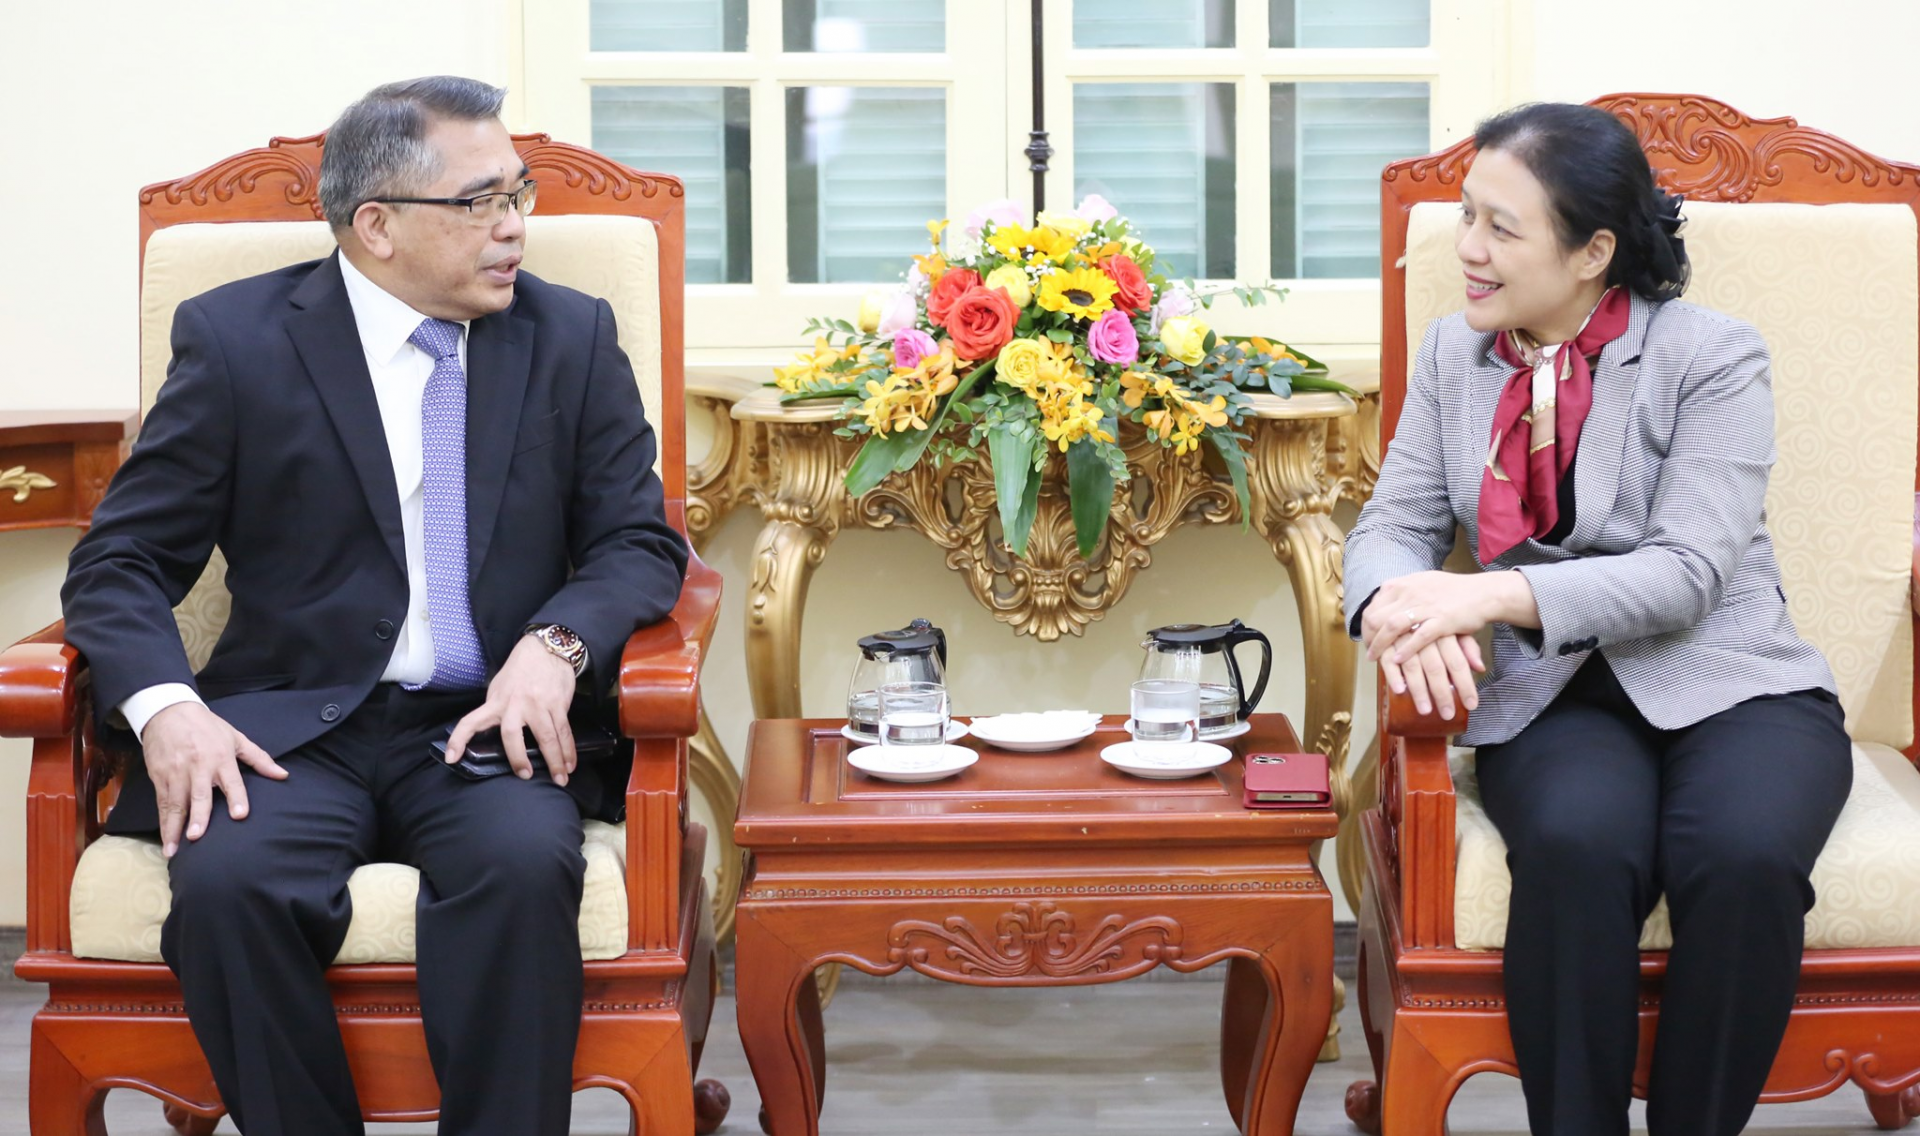 newly appointed ambassadors of the republic of the philippines to pay a courtesy visit to the vufo president